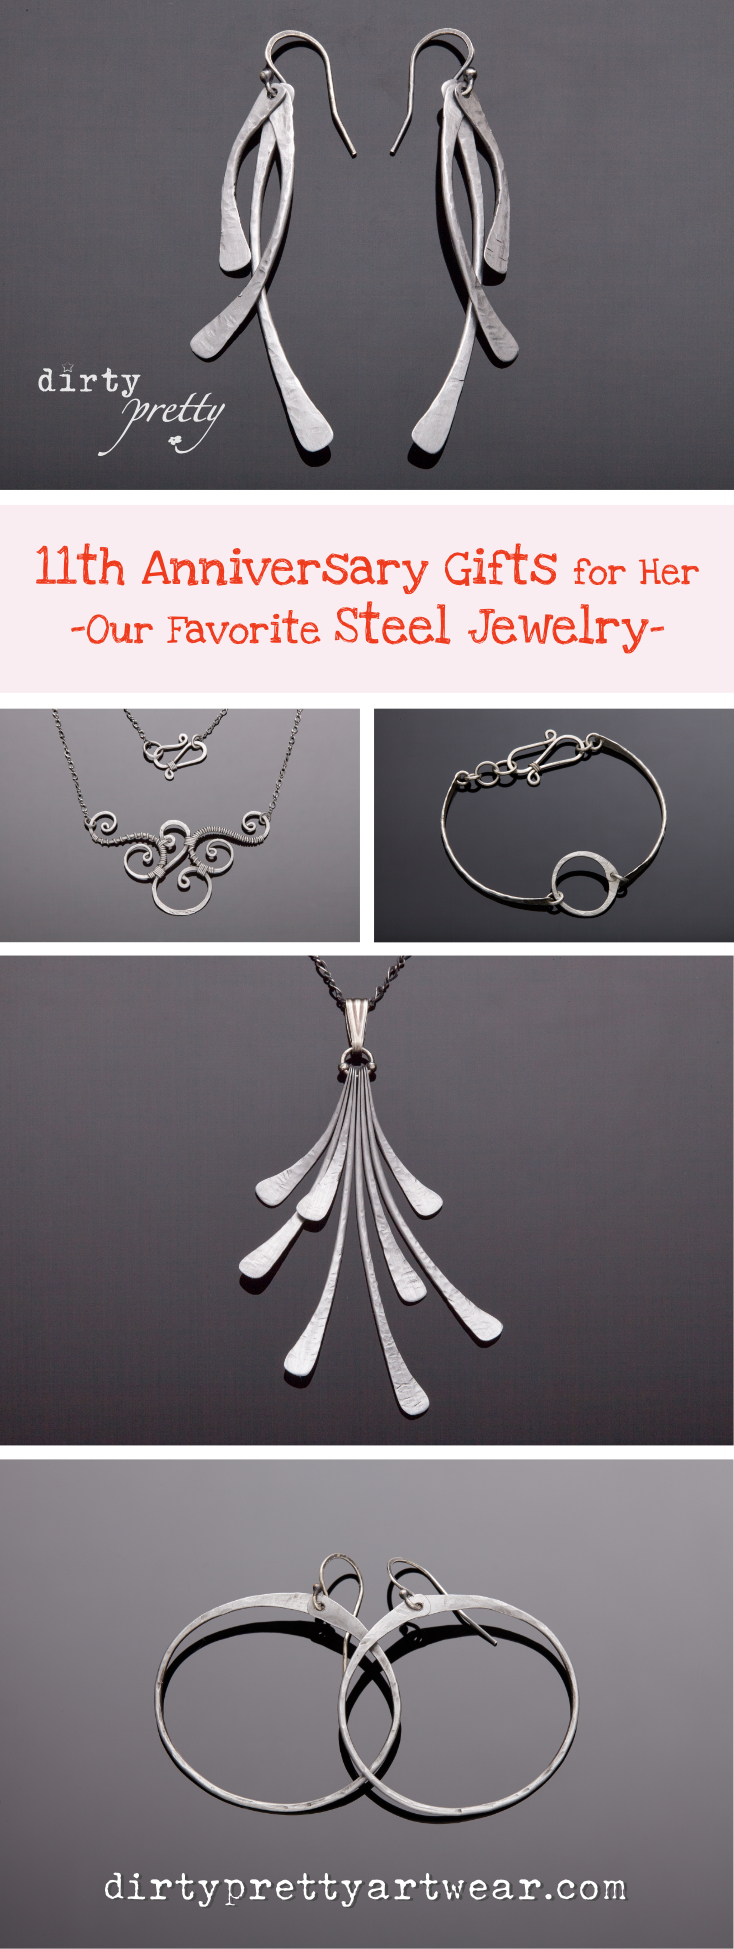 Time to find an 11th anniversary gift for the one you love? Look no farther dirtypretty artwearu0027s specialty is steel 11th anniversary gifts for her. & 11th Anniversary Gift - Steel Jewelry by dirtypretty artwear ...